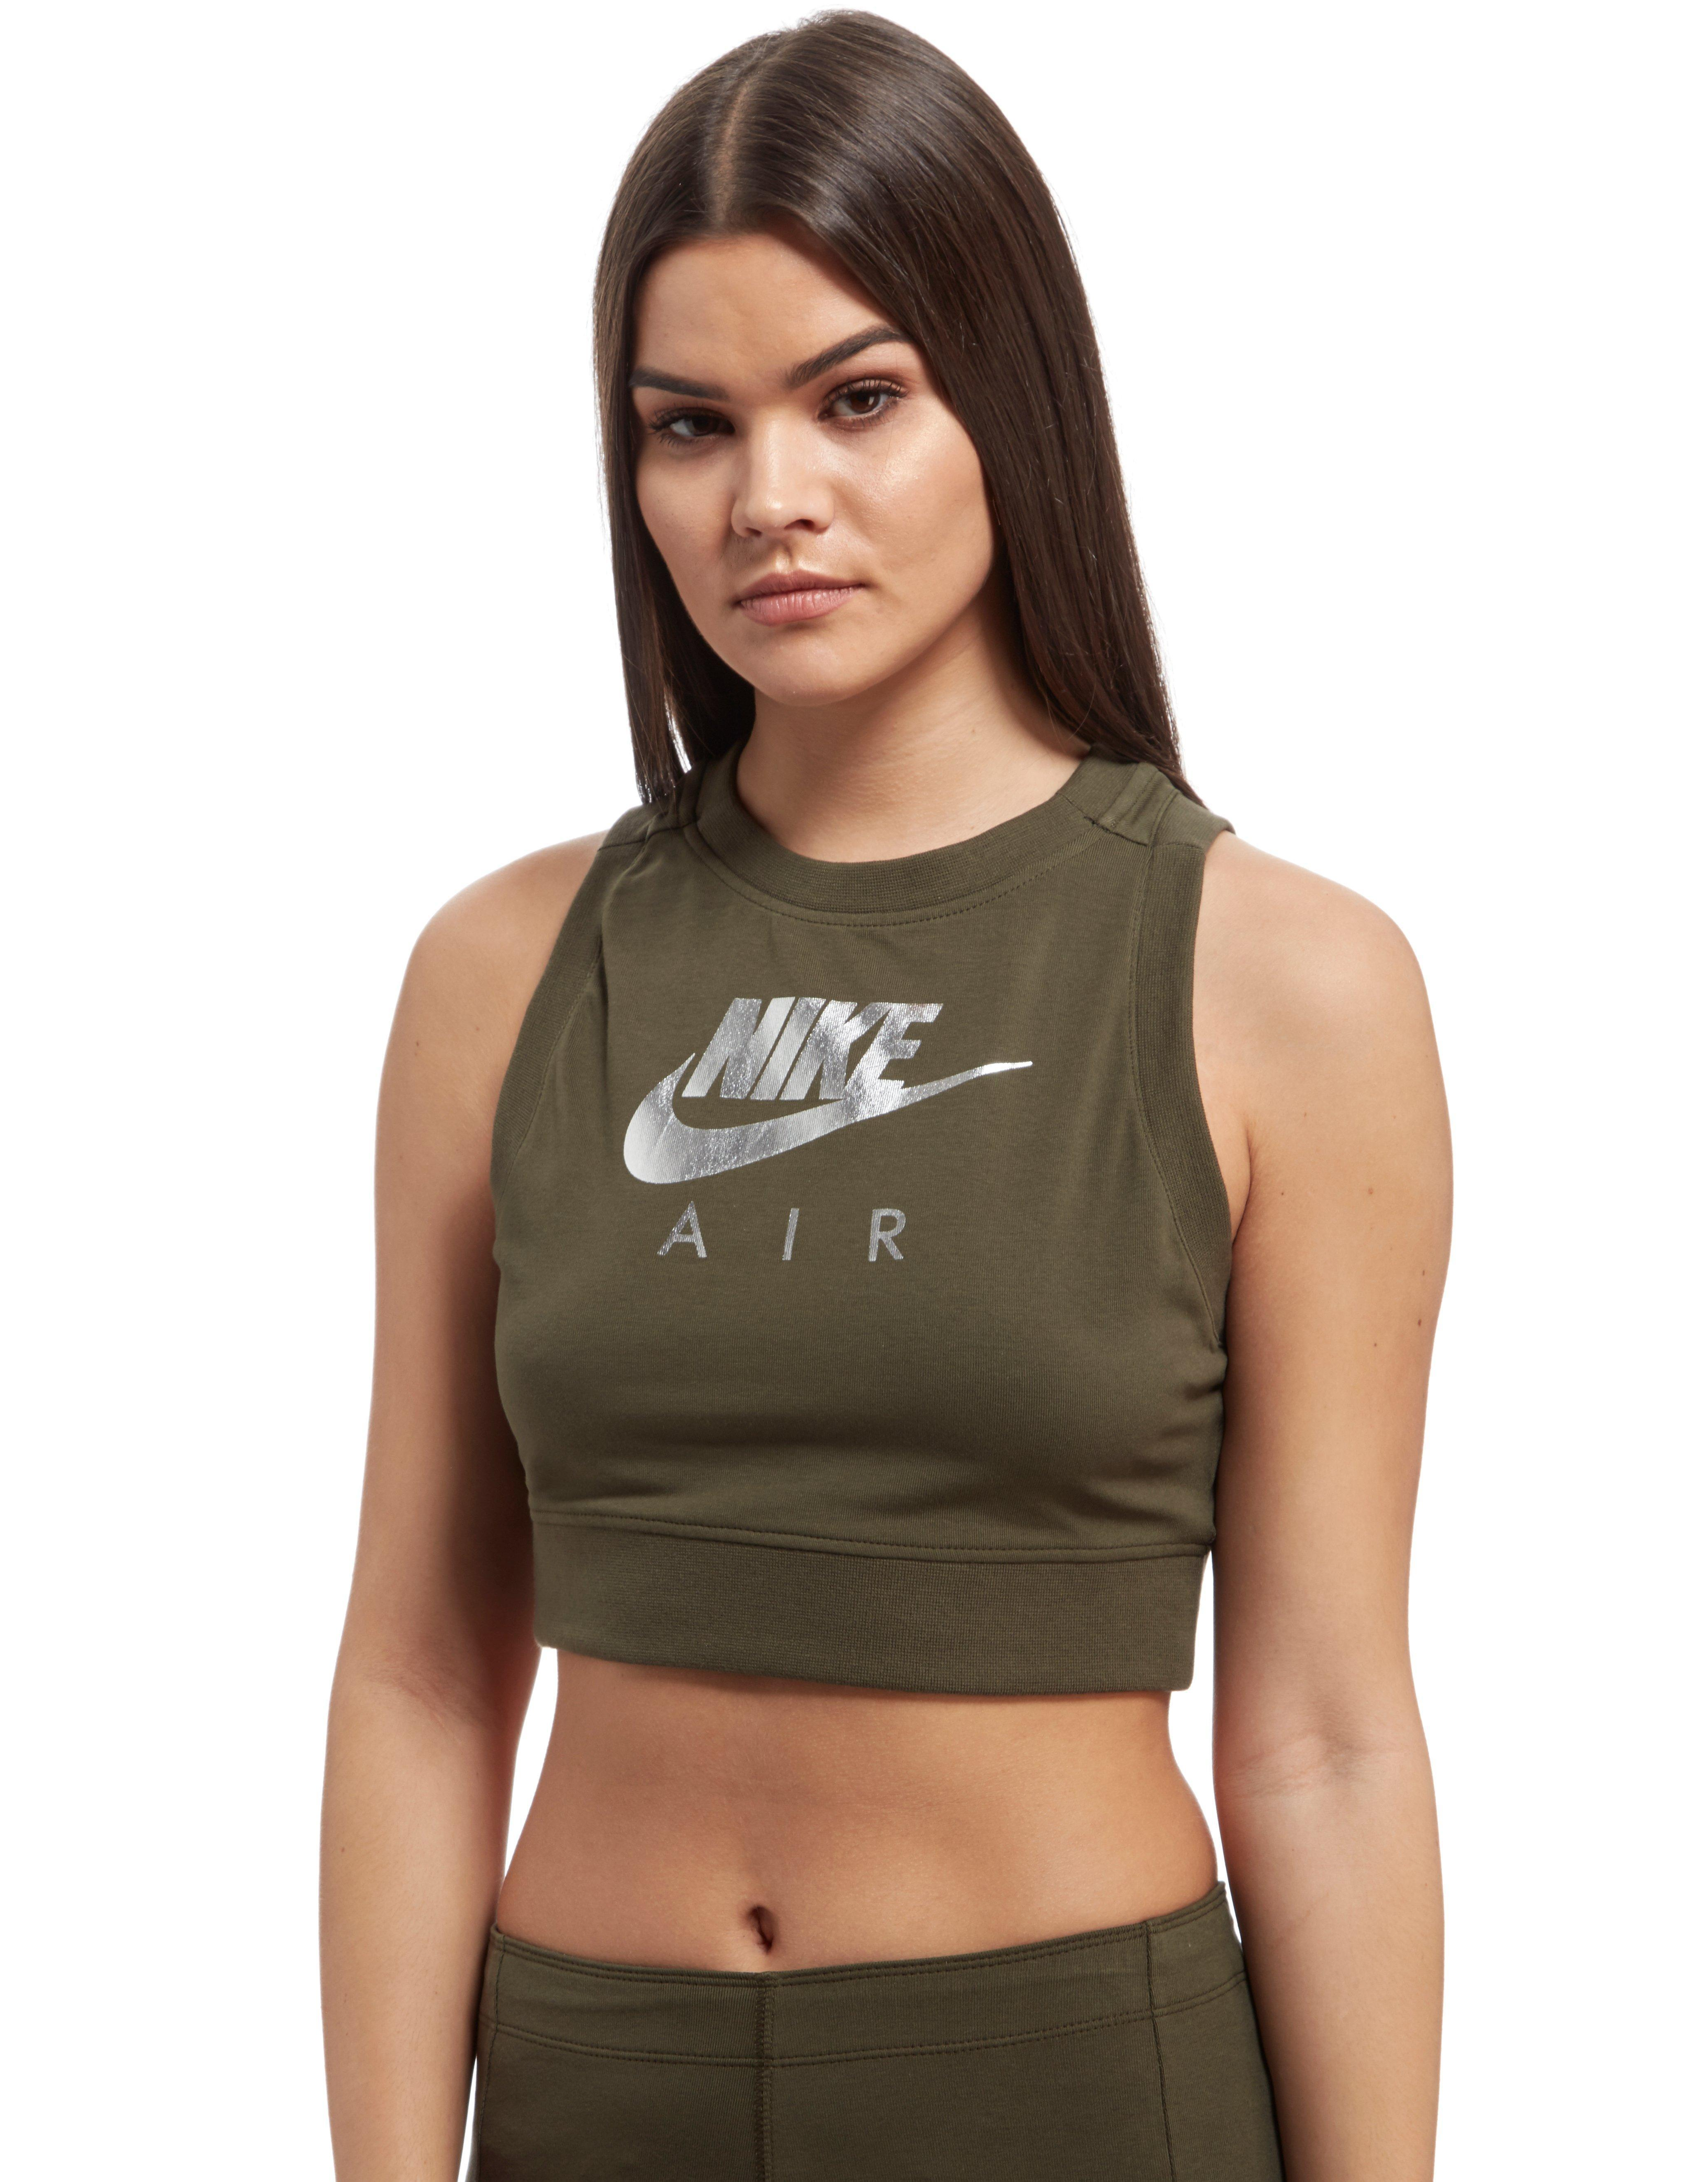 64441fe8ce1c94 Lyst - Nike Air Crop Top in Green